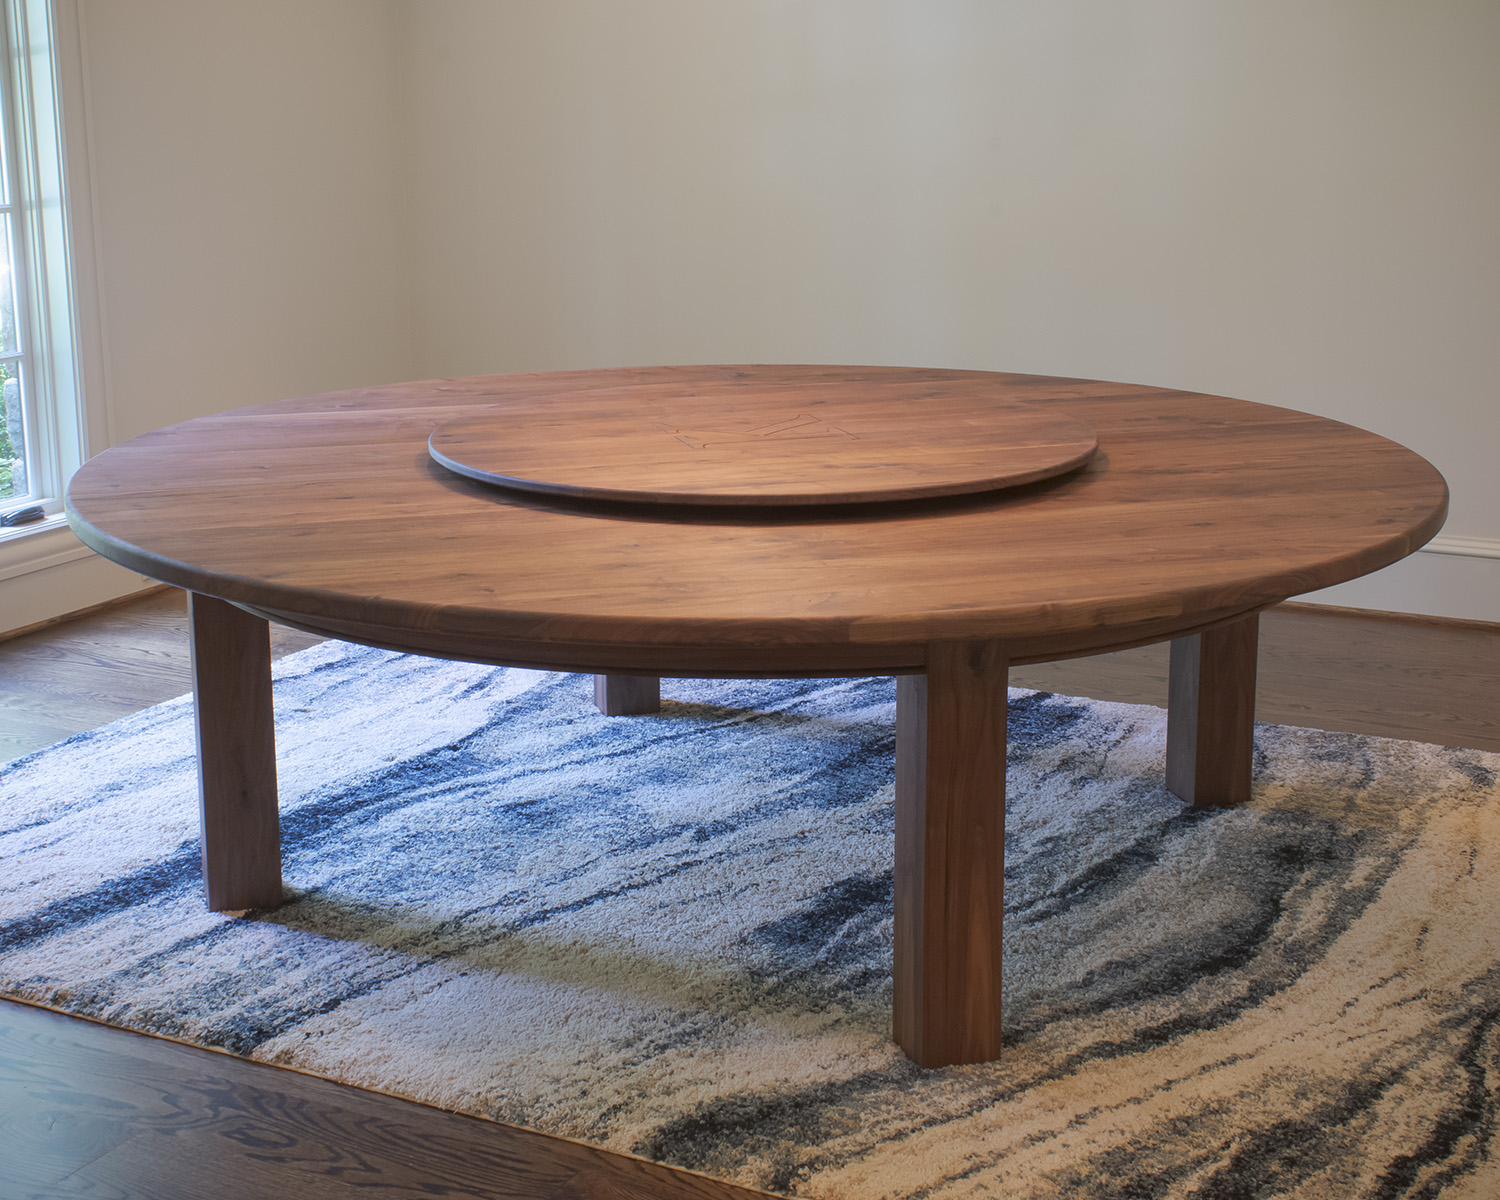 MODERN TABLES - Bring your ideas.